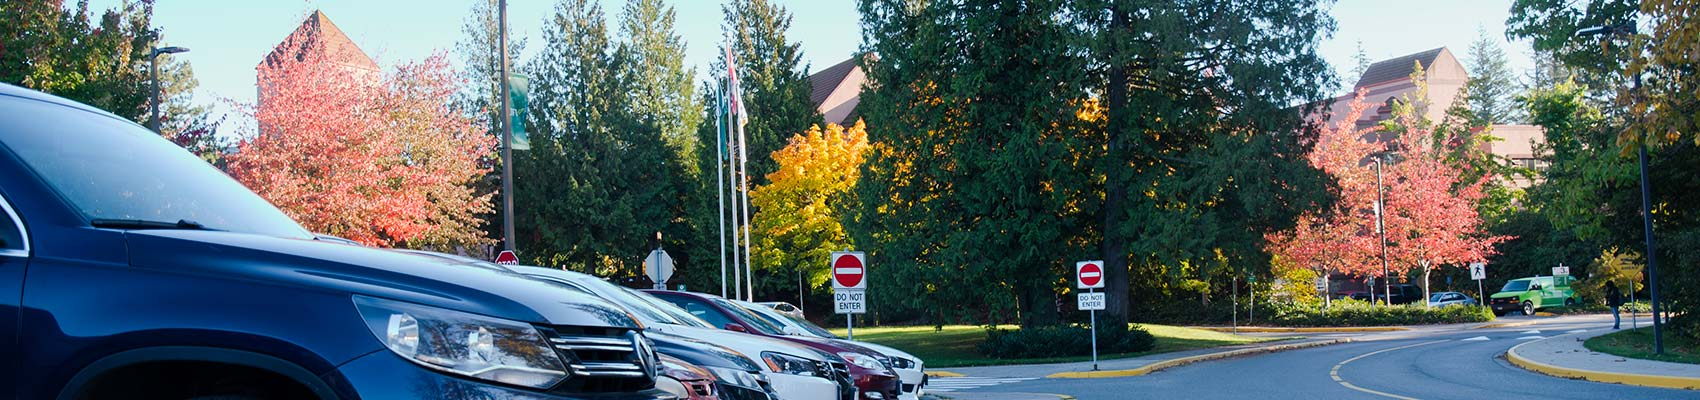 Parking at UFV